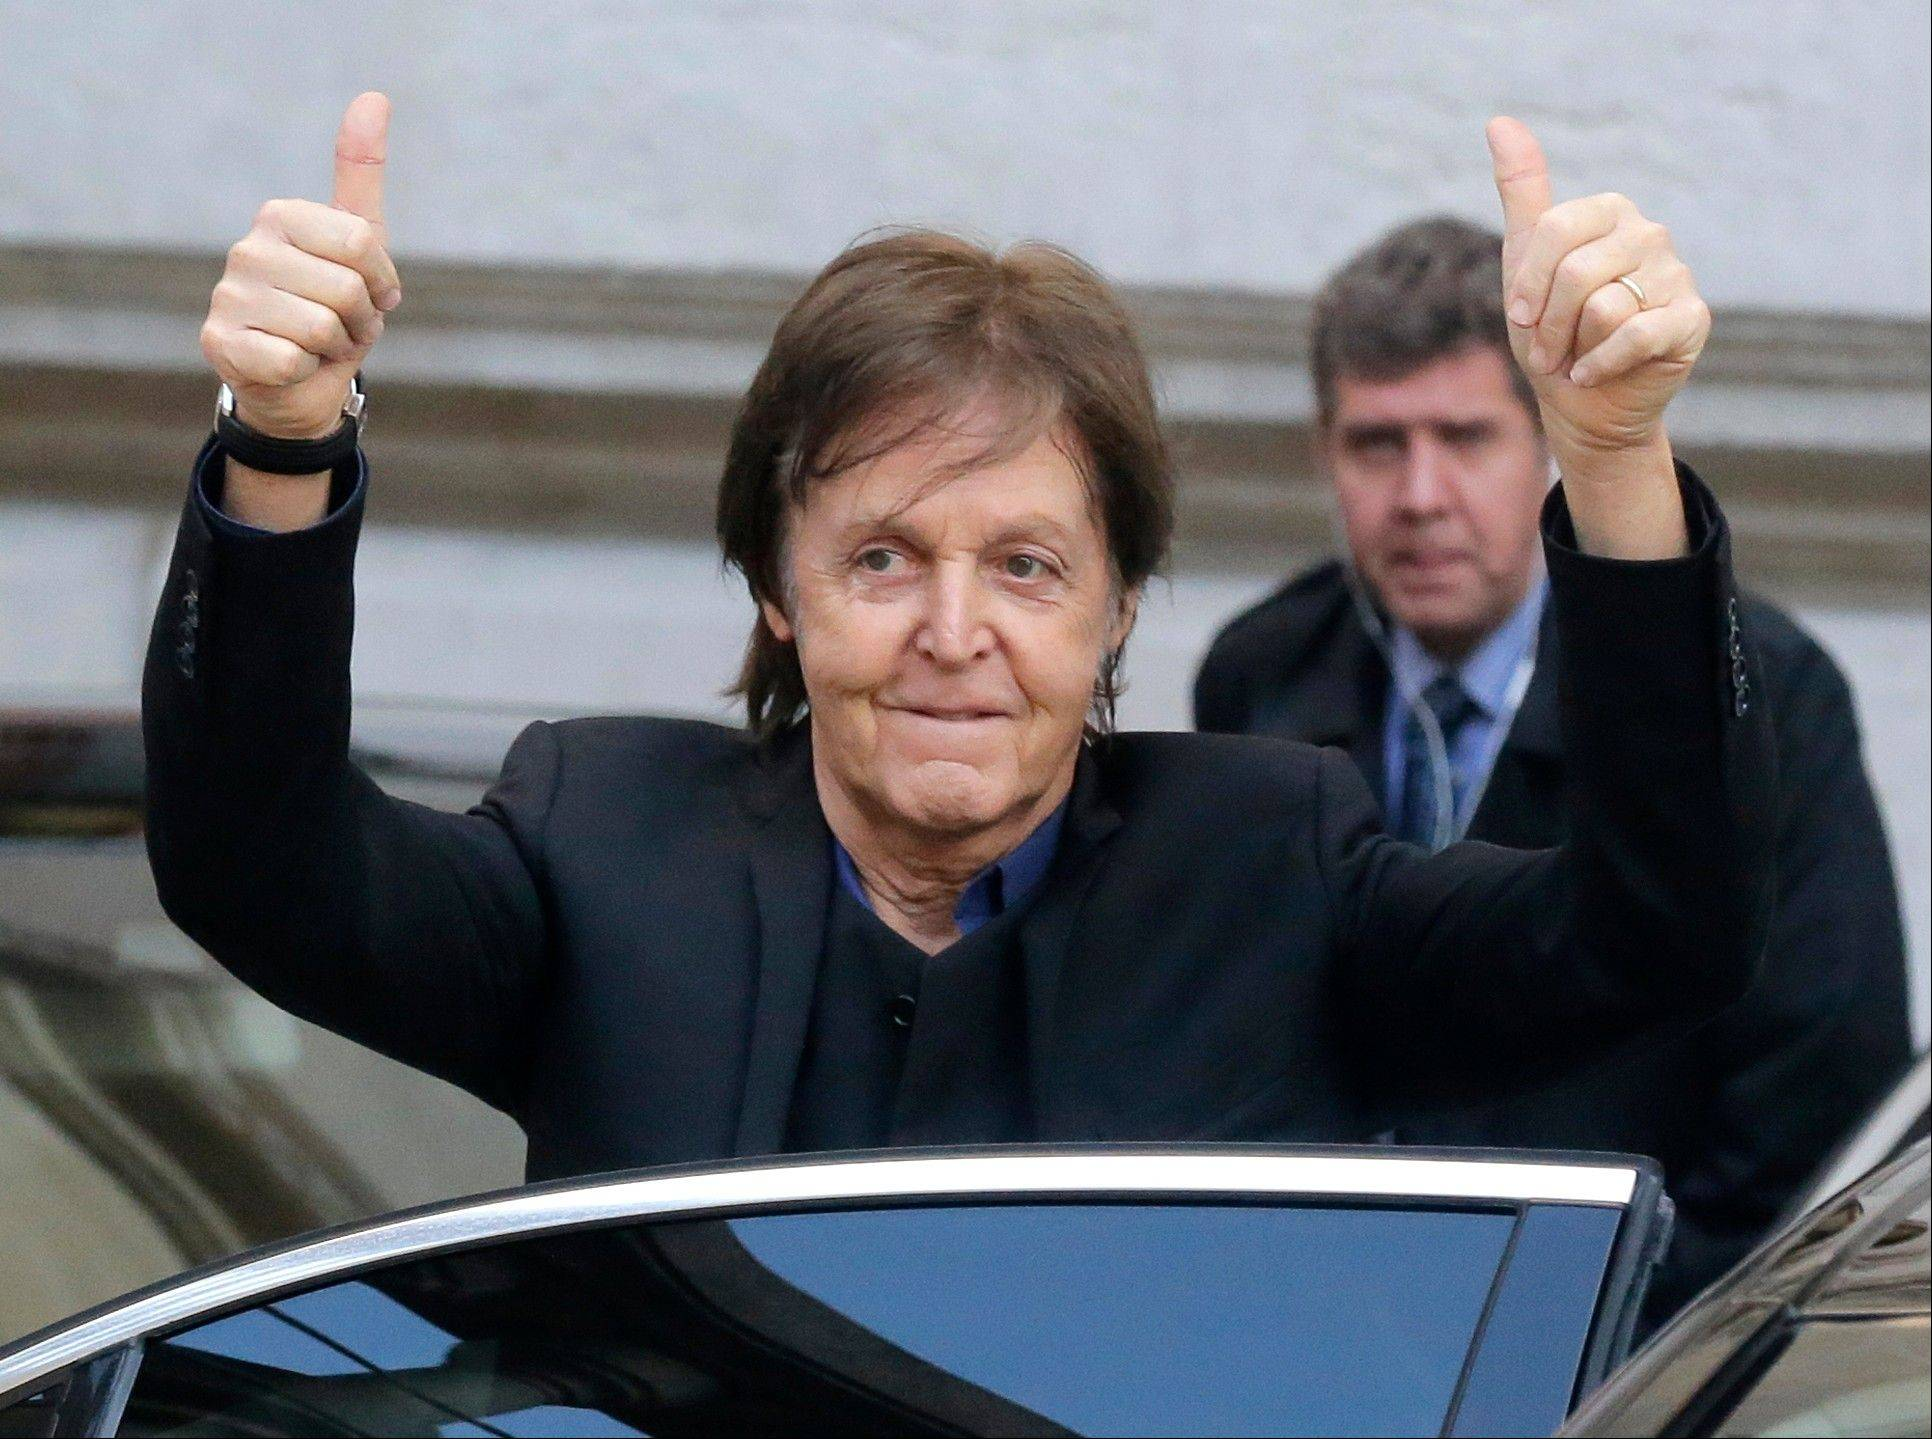 Sir Paul McCartney remains Britain�s wealthiest musician, according to the Sunday Times Rich List.